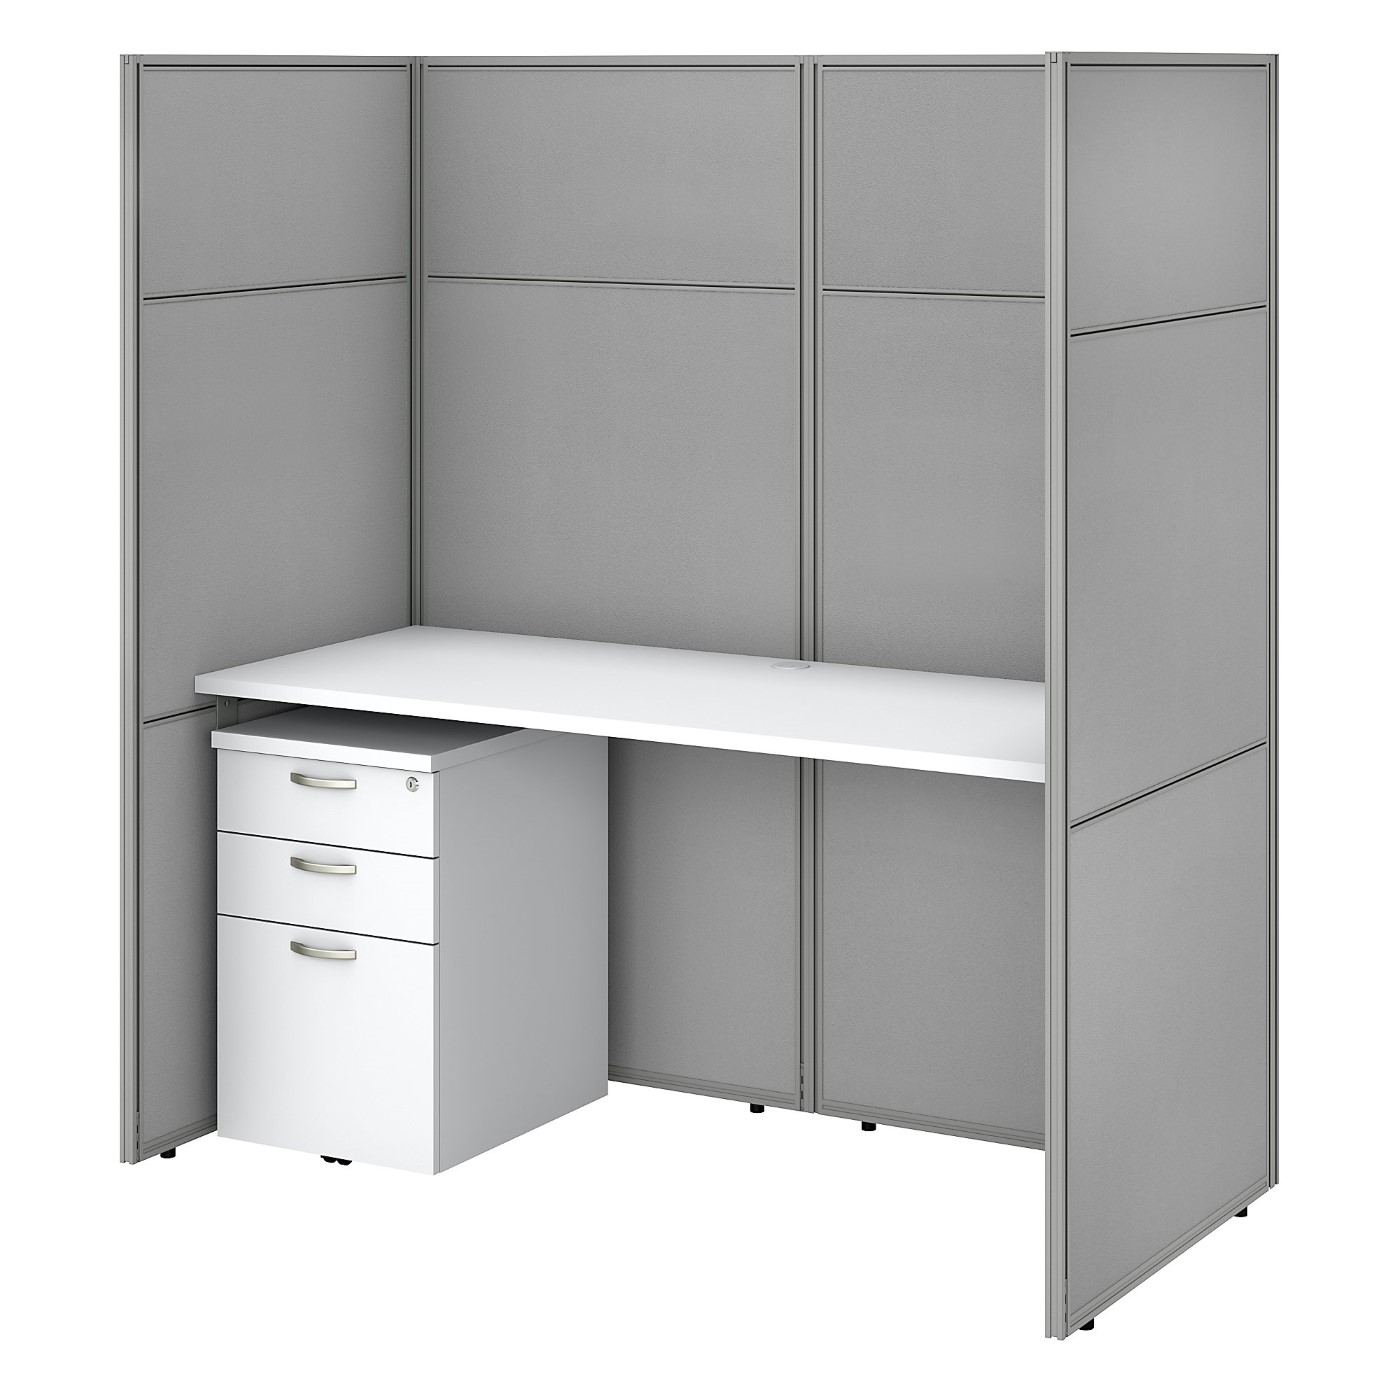 BUSH BUSINESS FURNITURE EASY OFFICE 60W CUBICLE DESK WITH FILE CABINET AND 66H CLOSED PANELS WORKSTATION. FREE SHIPPING SALE DEDUCT 10% MORE ENTER '10percent' IN COUPON CODE BOX WHILE CHECKING OUT. ENDS 5-31-20.